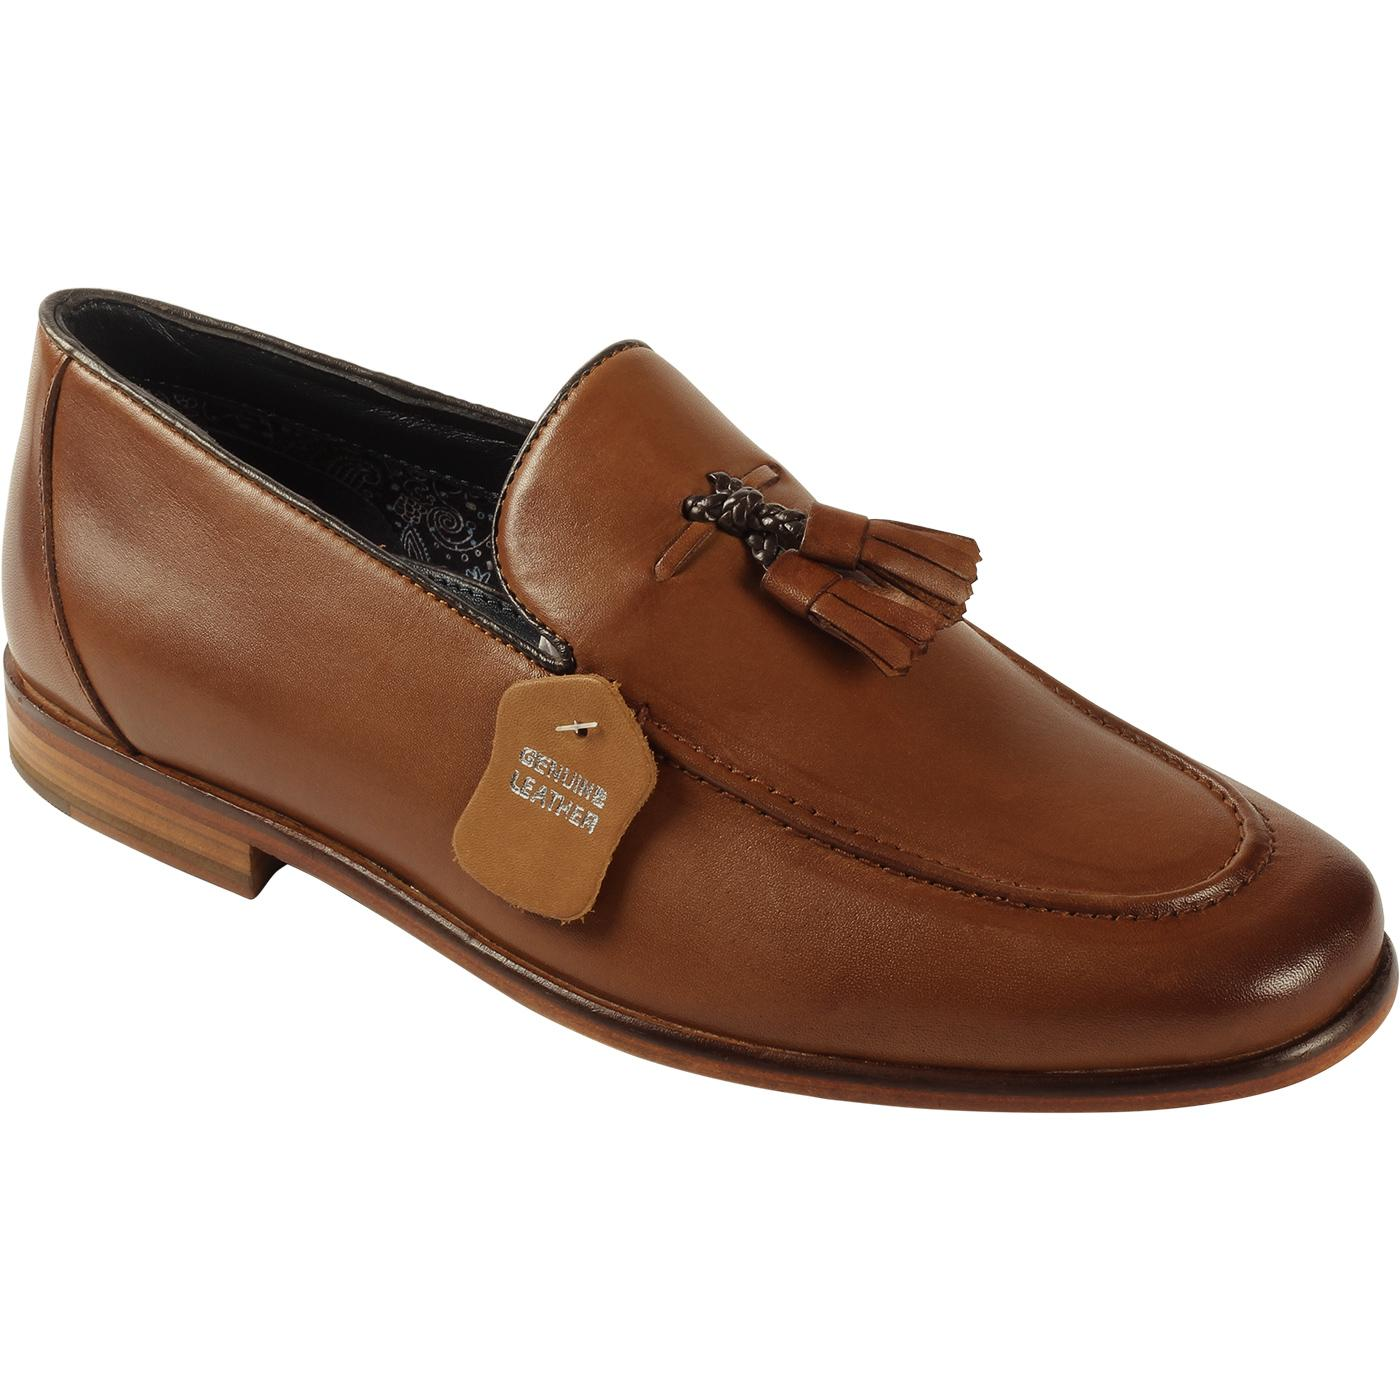 Enzo PAOLO VANDINI Men's Mod Tassel Loafers (Tan)